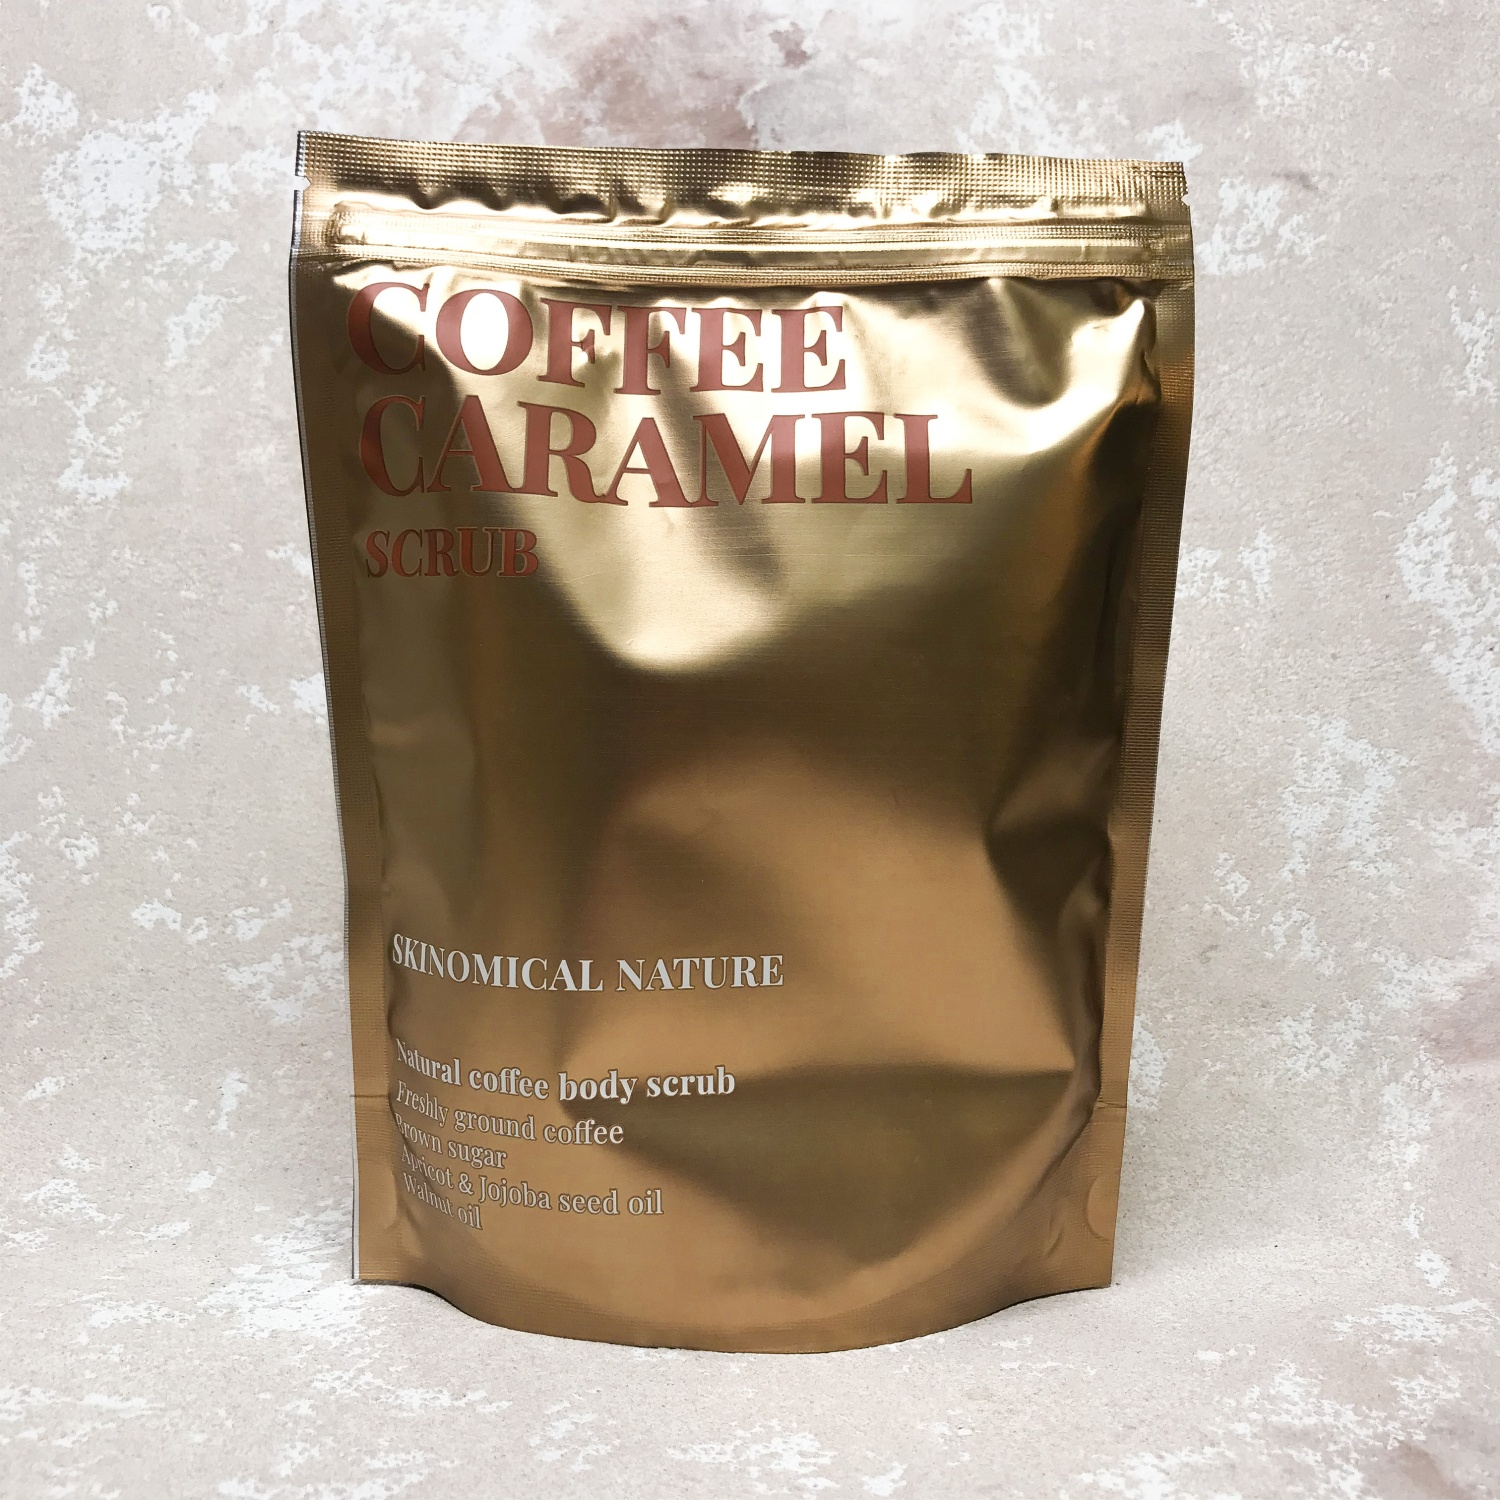 Skinomical Nature Coffee Caramel Scrub